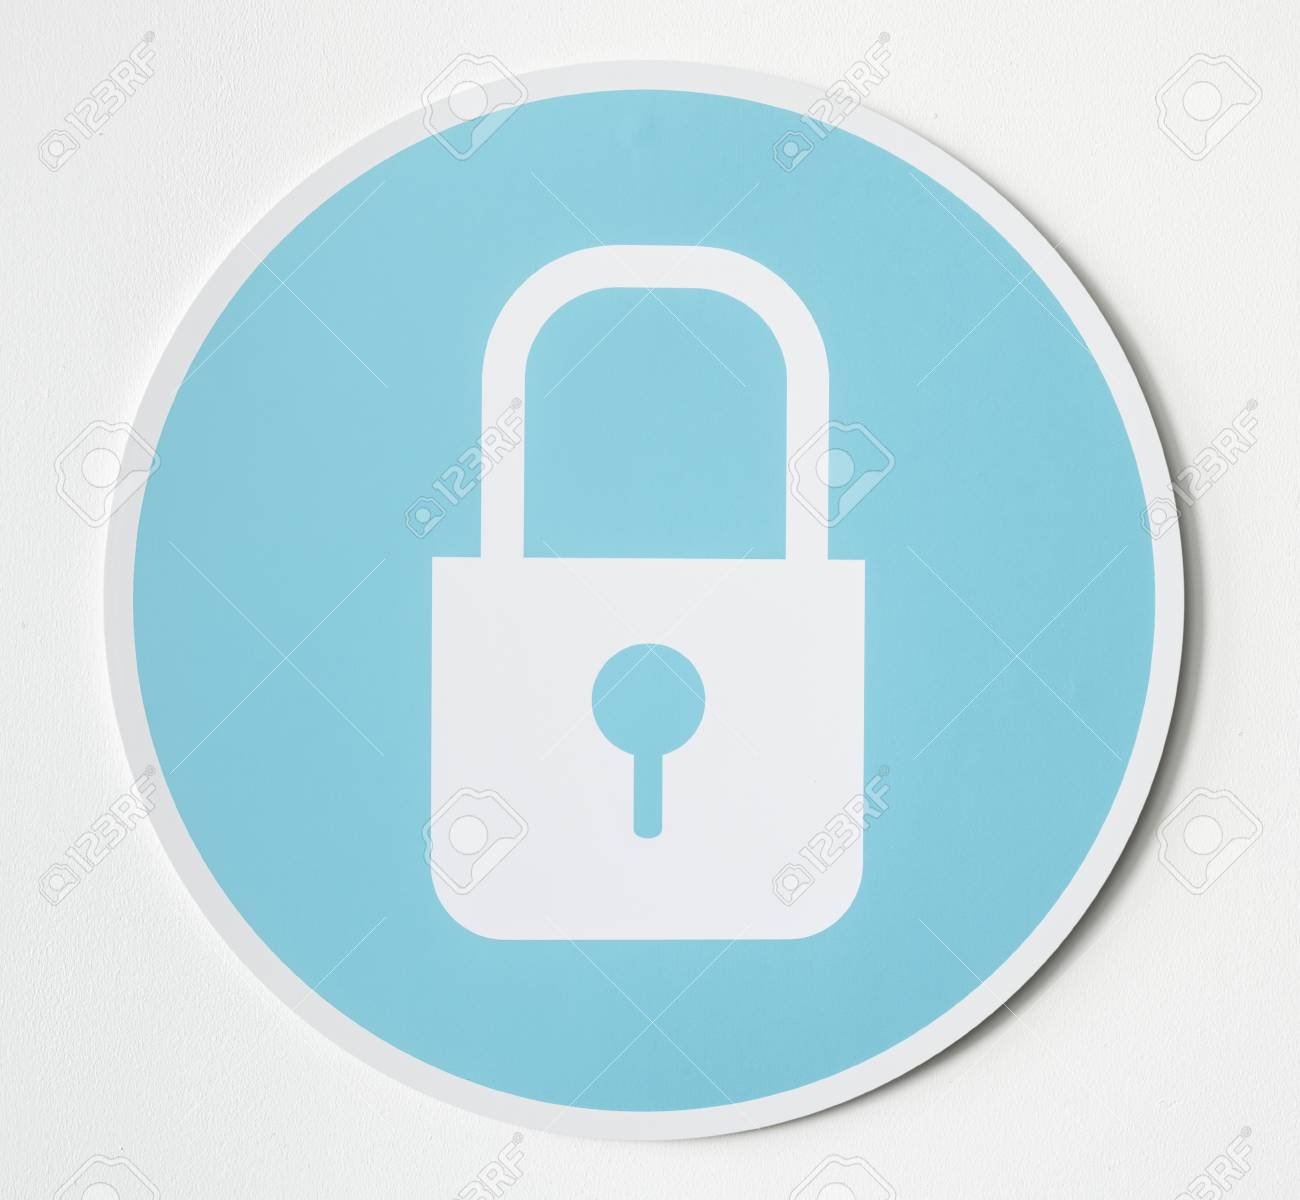 privacy safety lock icon symbol stock photo, picture and royalty Privacy Fence Ideas Safety privacy safety lock icon symbol stock photo 109641883